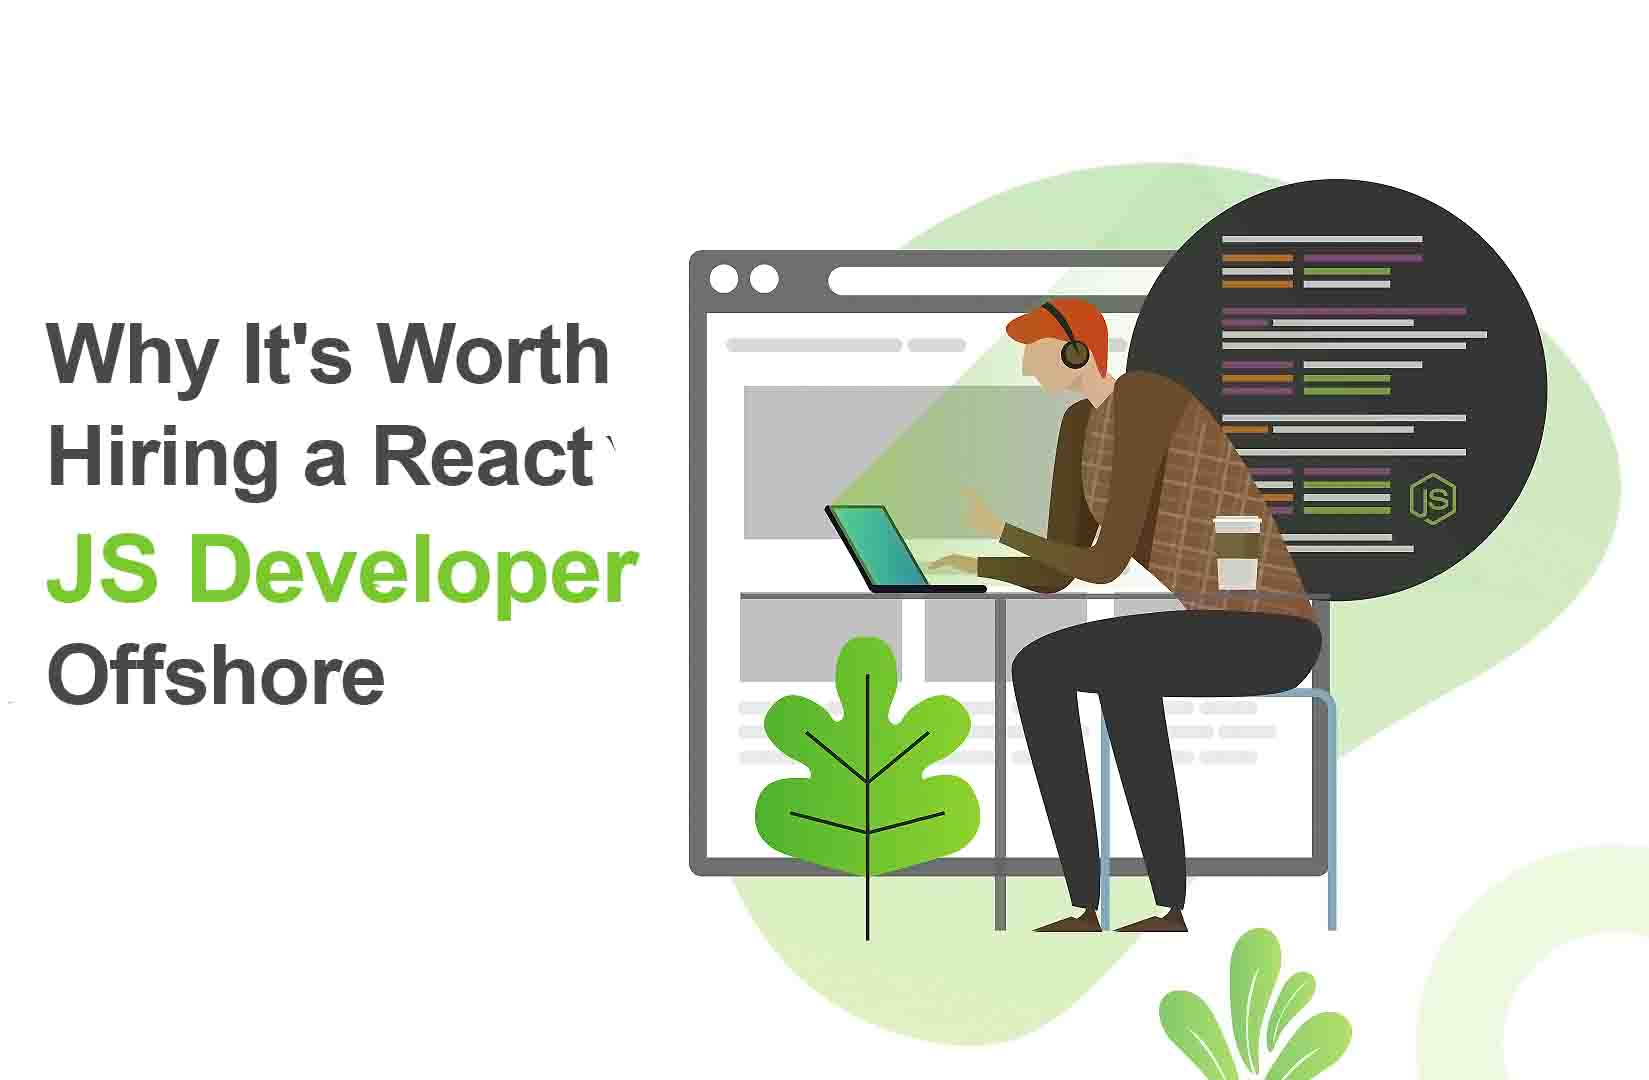 Why It's Worth Hiring a React JS Developer Offshore